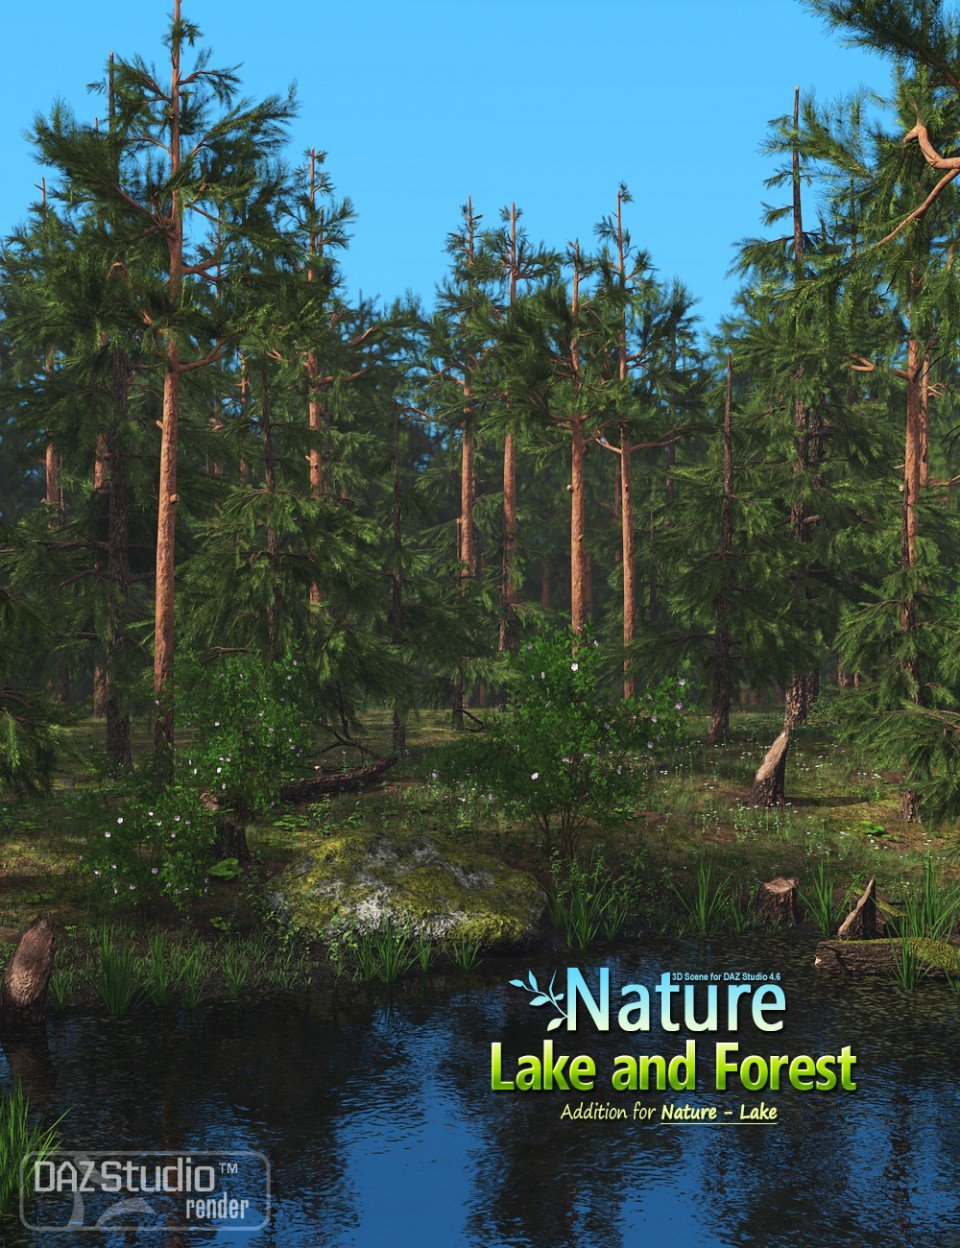 Nature – Lake and Forest_DAZ3D下载站